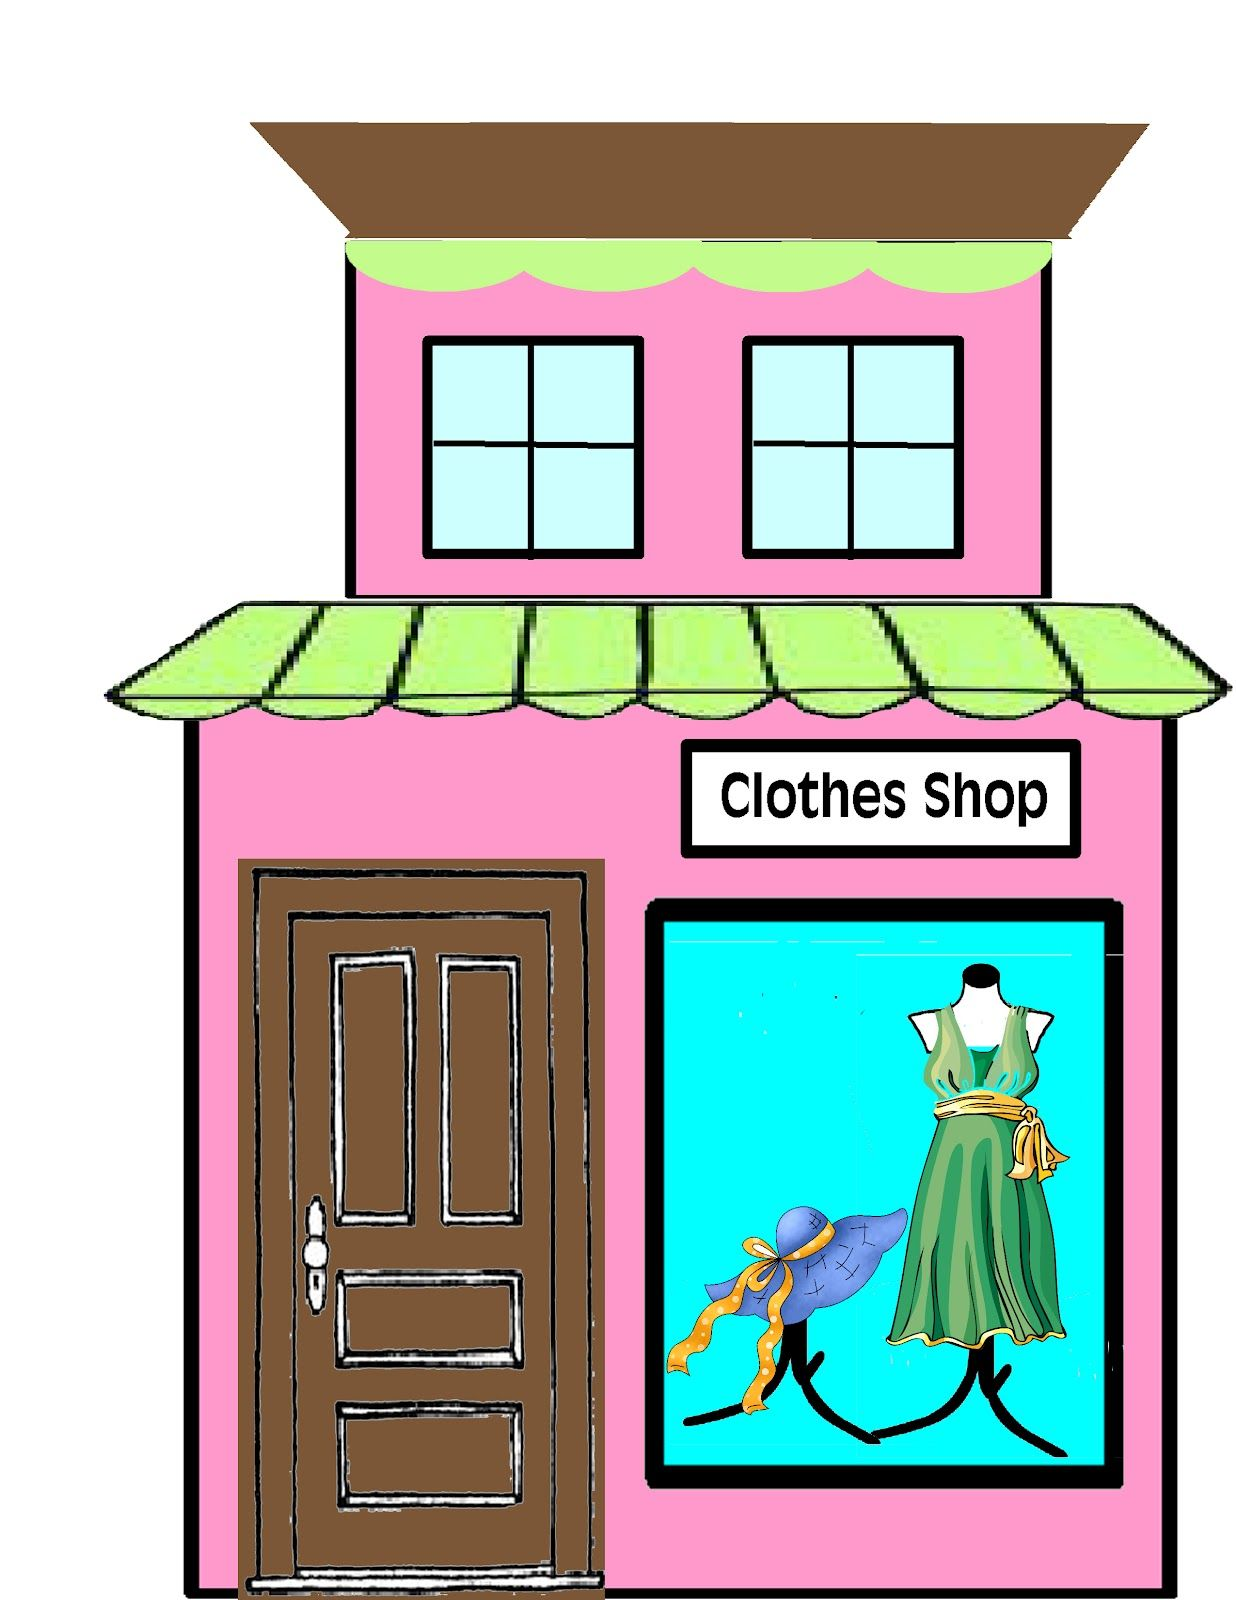 Grocery store building clipart black and white svg free library Storefront clipart victorian - 183 transparent clip arts ... svg free library